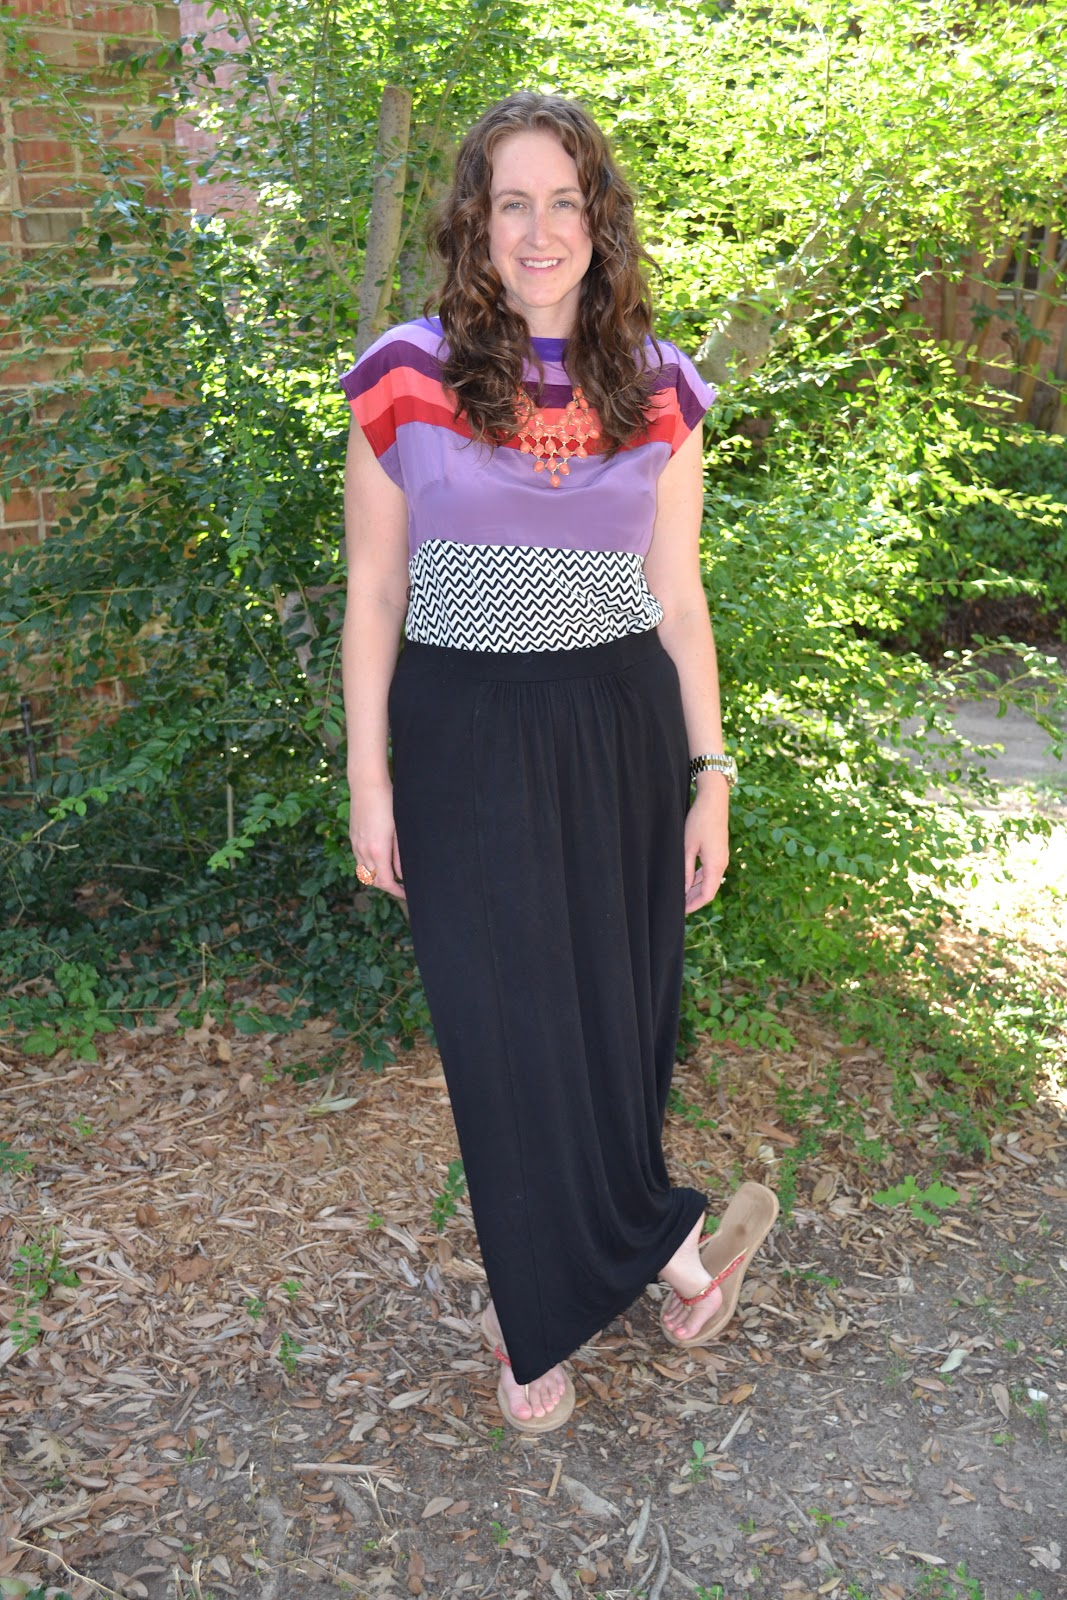 c42d9ca208 The Mystery Dress - c/o Marie Claire and Nanette Lepore, Black Maxi Skirt -  Kohl's, Coral Sandals - Kohl's, Coral Necklace - c/o Versona Accessories,  ...